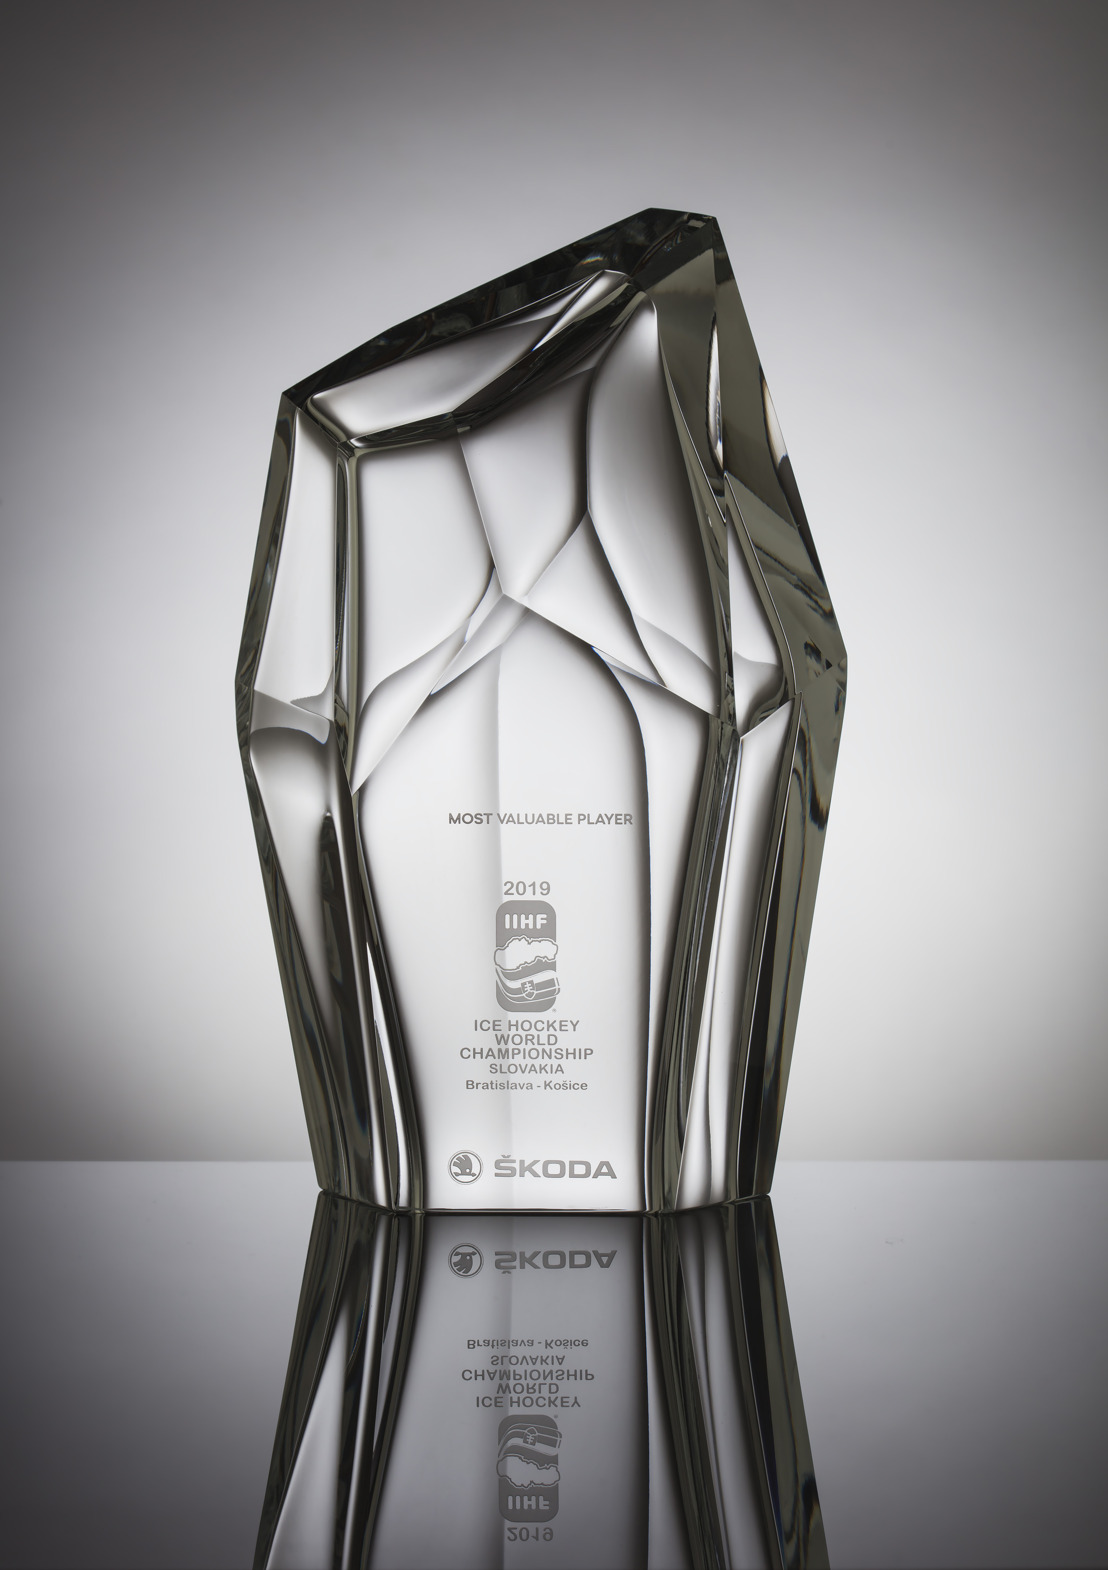 ŠKODA Design creates trophy for 'Most Valuable Player' of IIHF Ice Hockey World Championship 2019